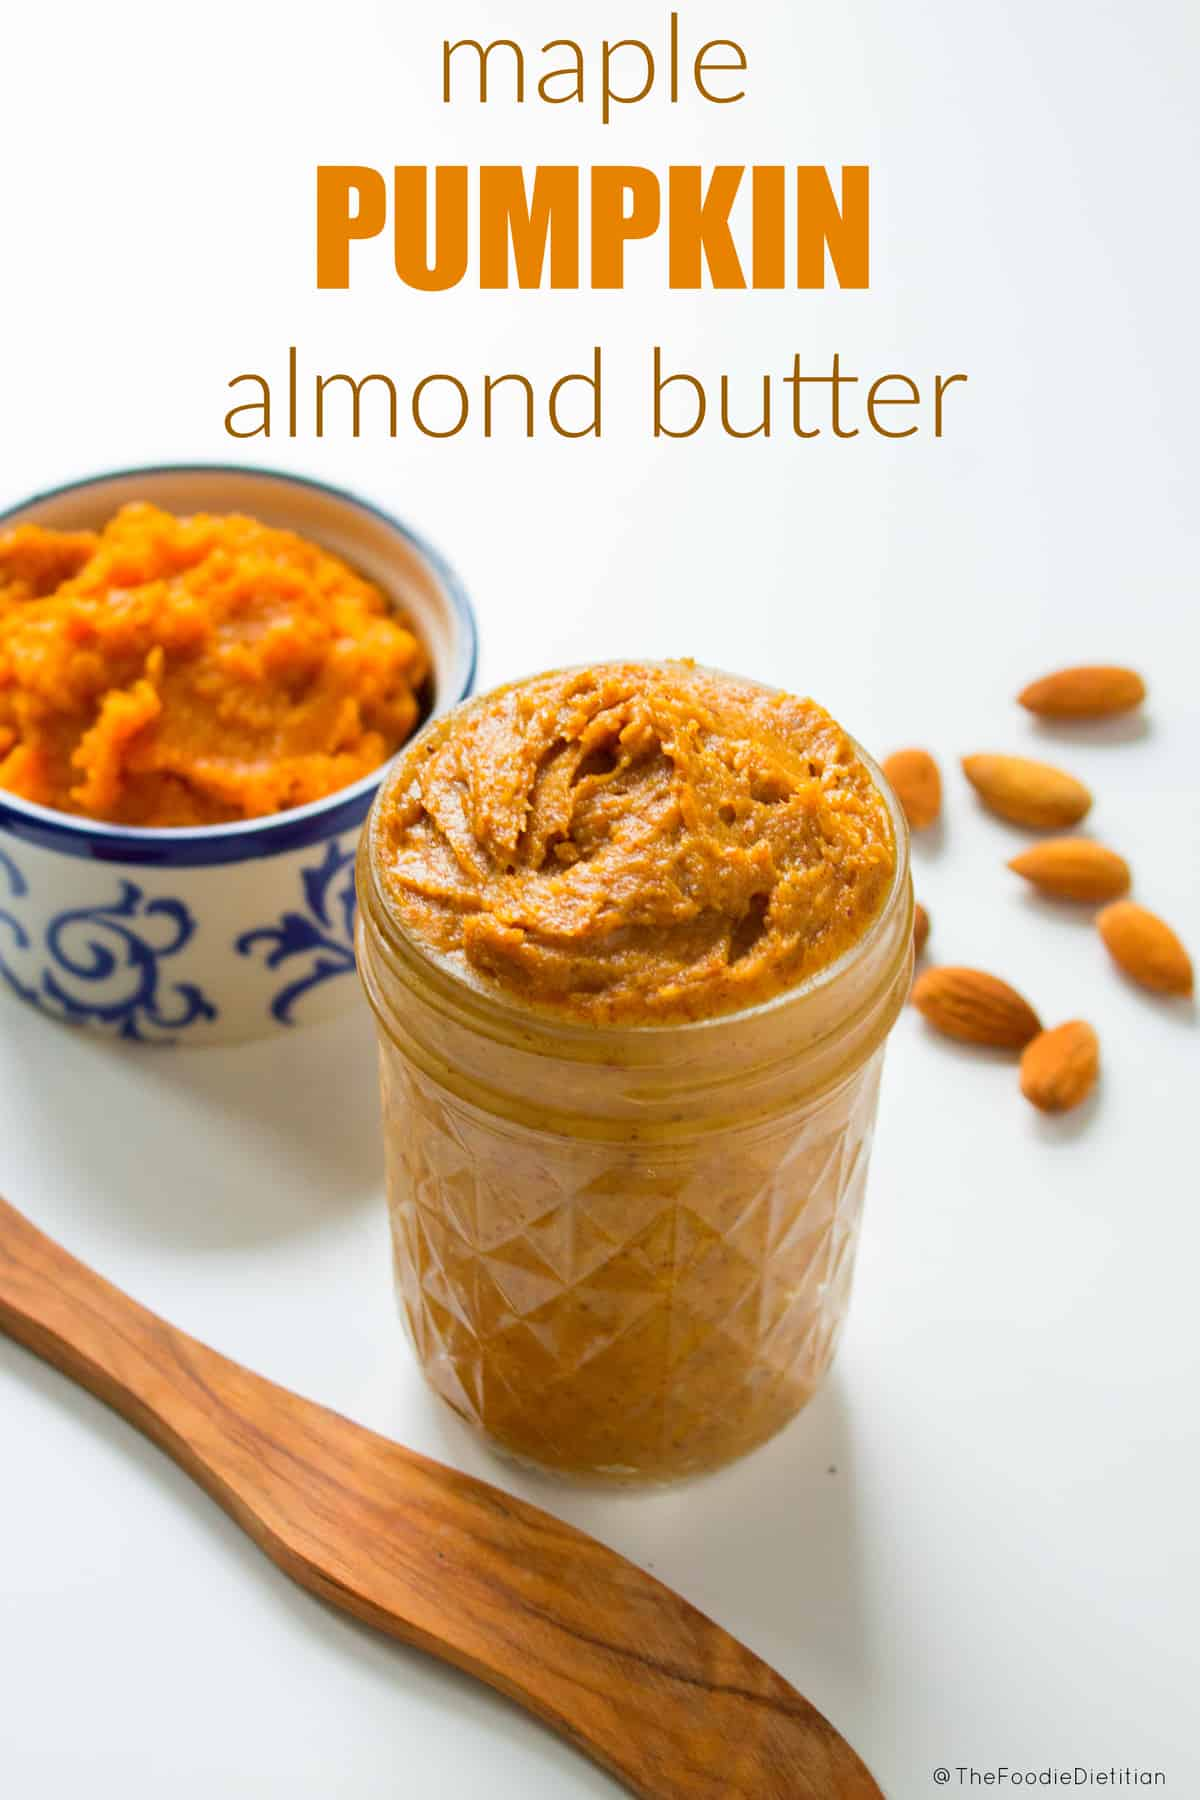 Maple pumpkin almond butter is the ultimate fall spread - requires only a handful of ingredients and it takes less than five minutes to make. Spread this nut butter onto all the fall things.